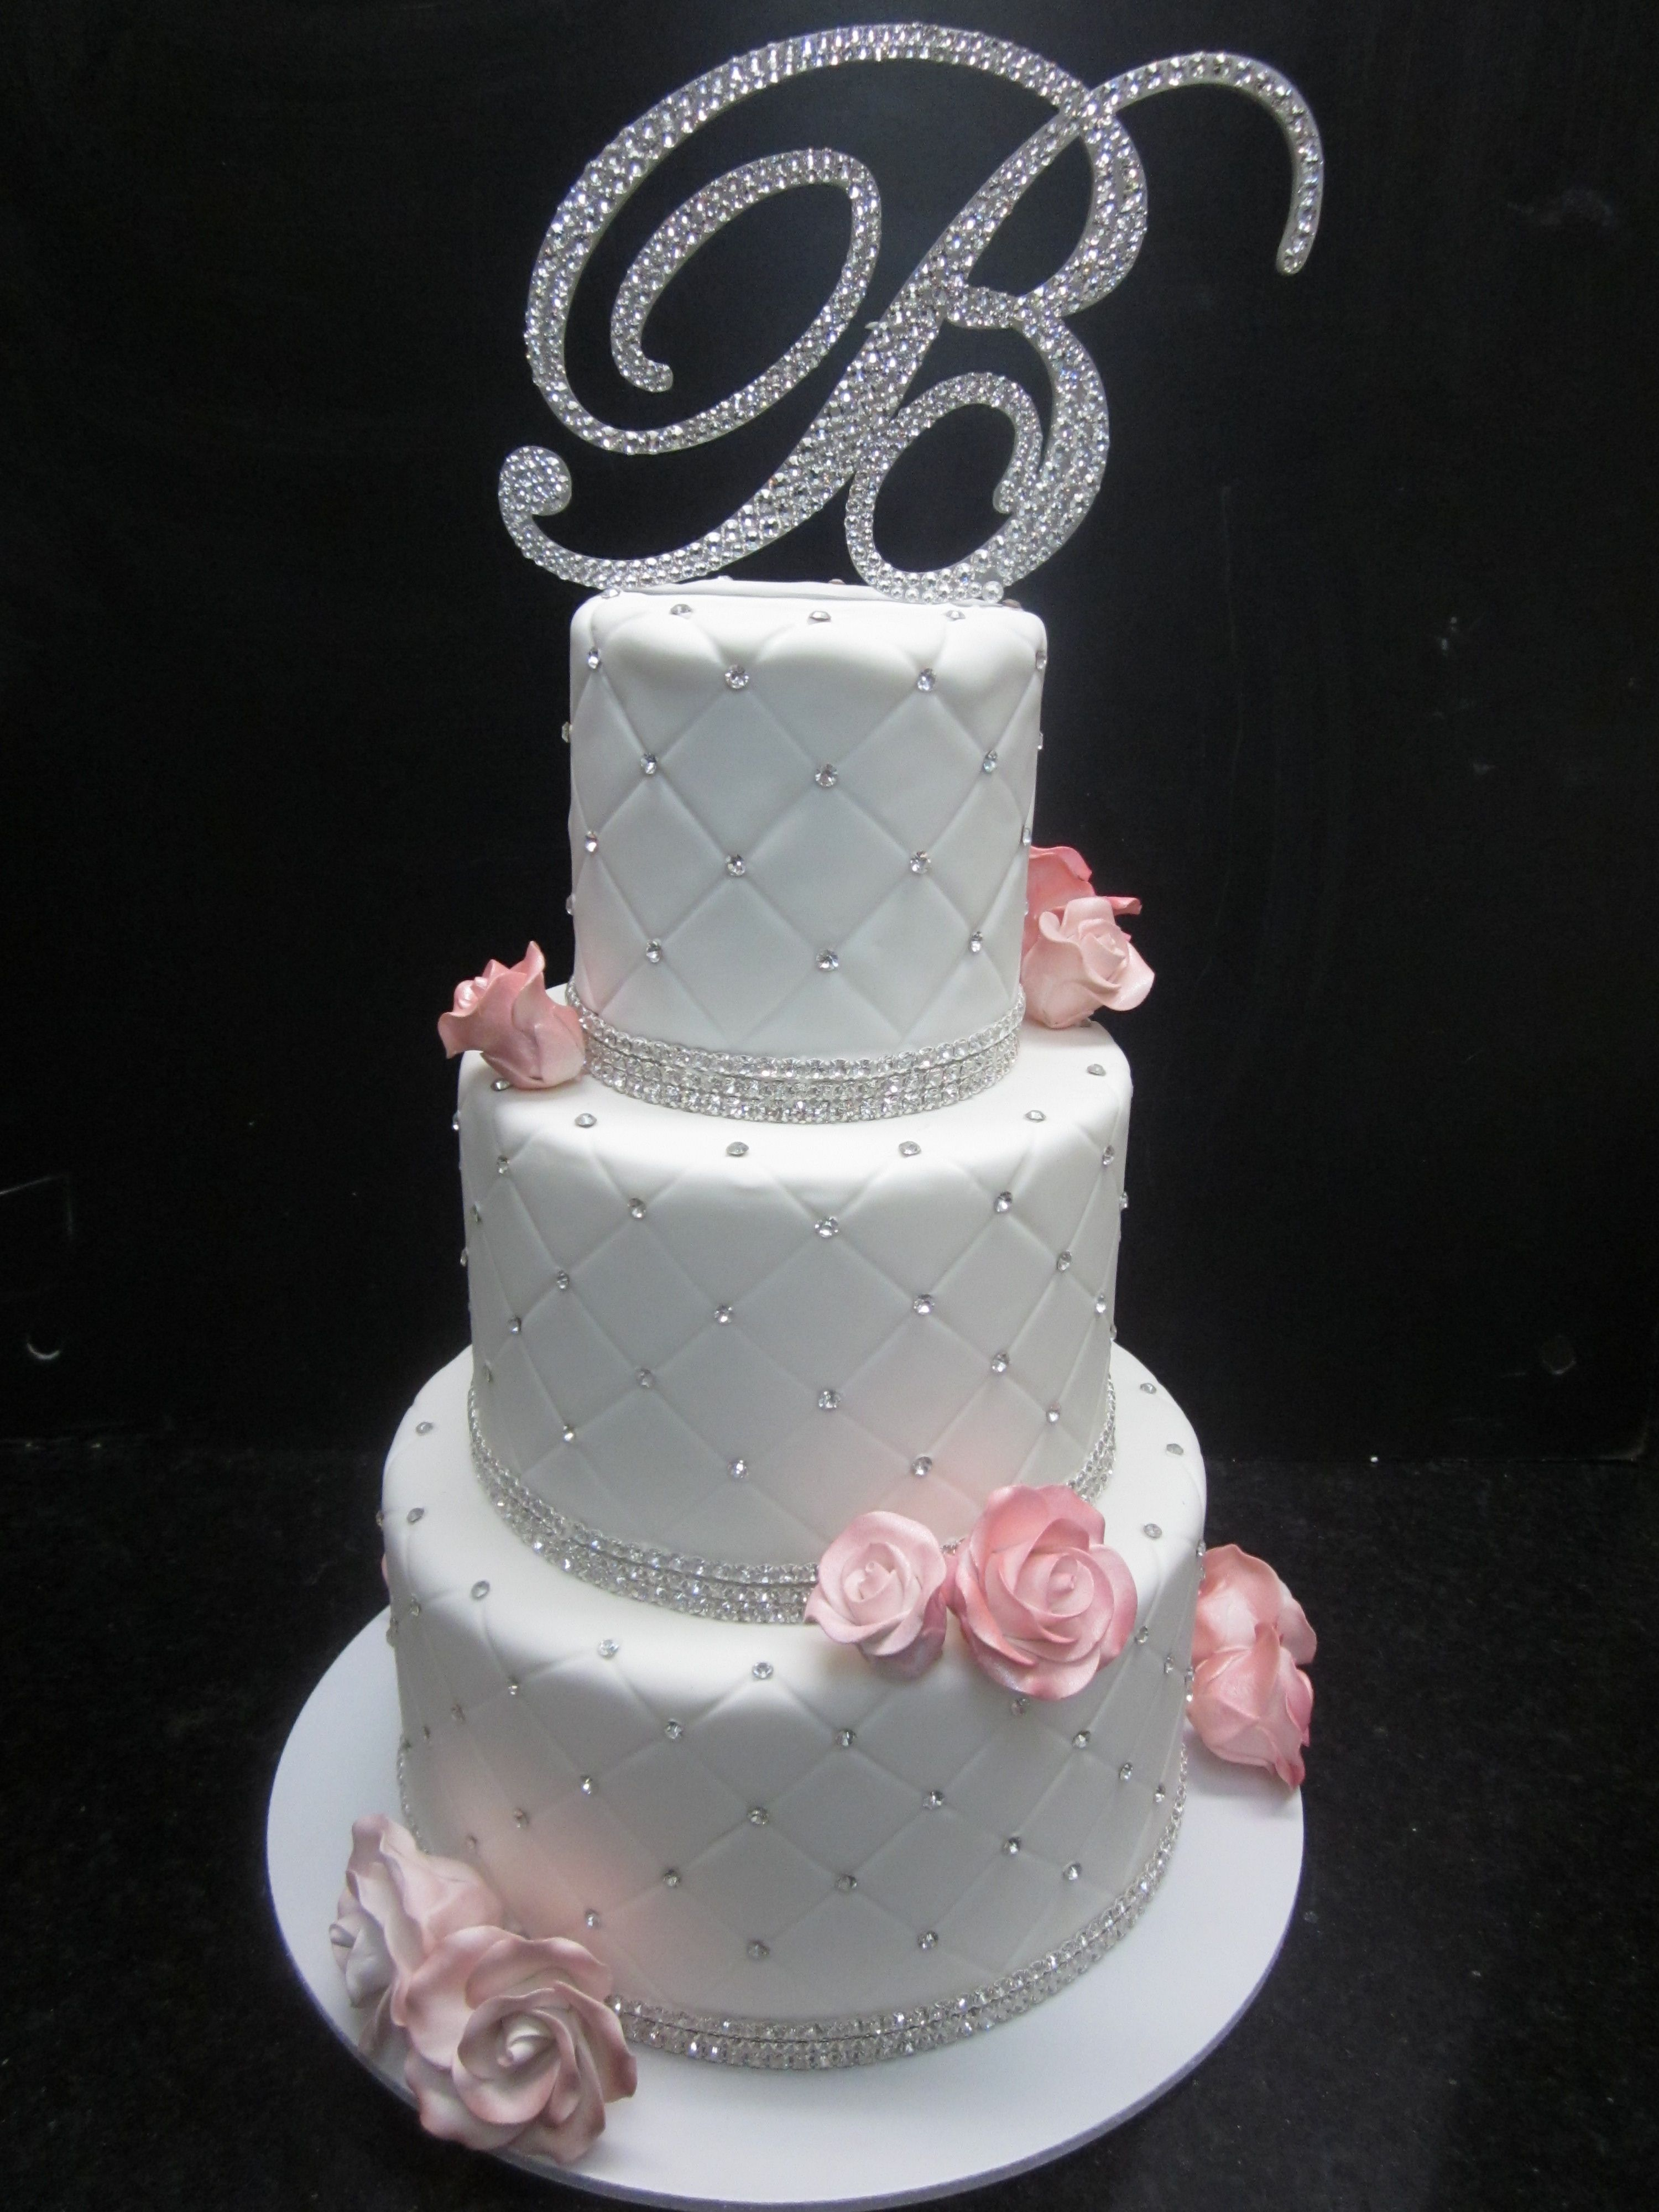 Quilted Wedding Cake With A Textured Look With Light Pink Sugar Roses On Each Layer Finished Wit Wedding Cake Quilted Wedding Cakes With Flowers Wedding Cakes